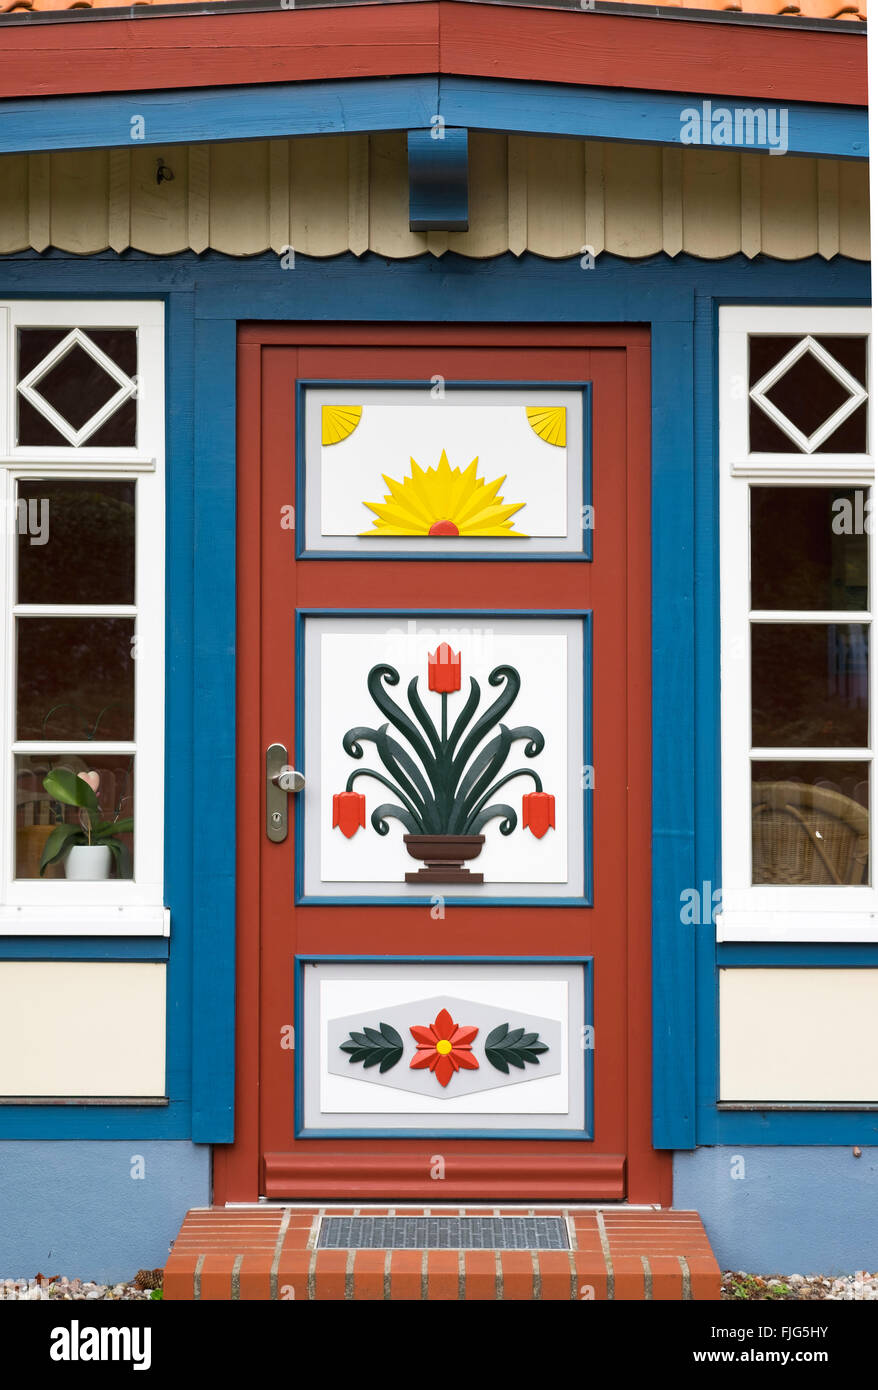 Traditionally painted door of a captain's house, Prerow, Darß, Fischland-Zingst, Baltic Sea, Mecklenburg - Stock Image